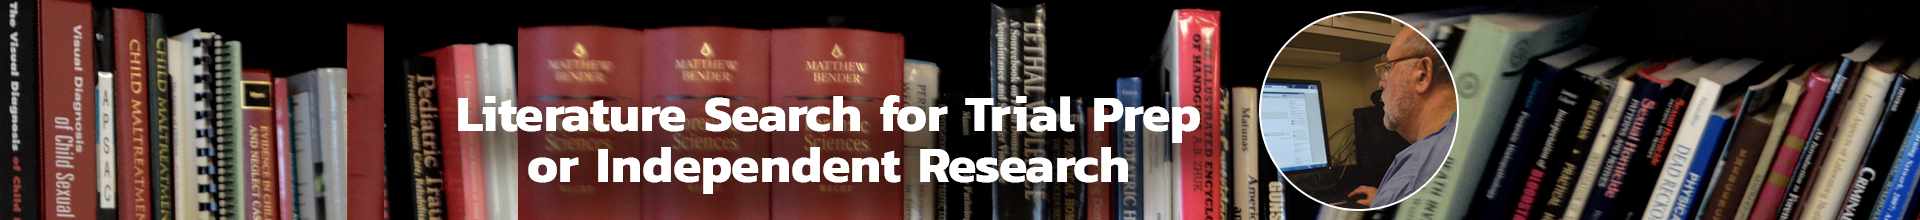 Literature search for trial prep or research